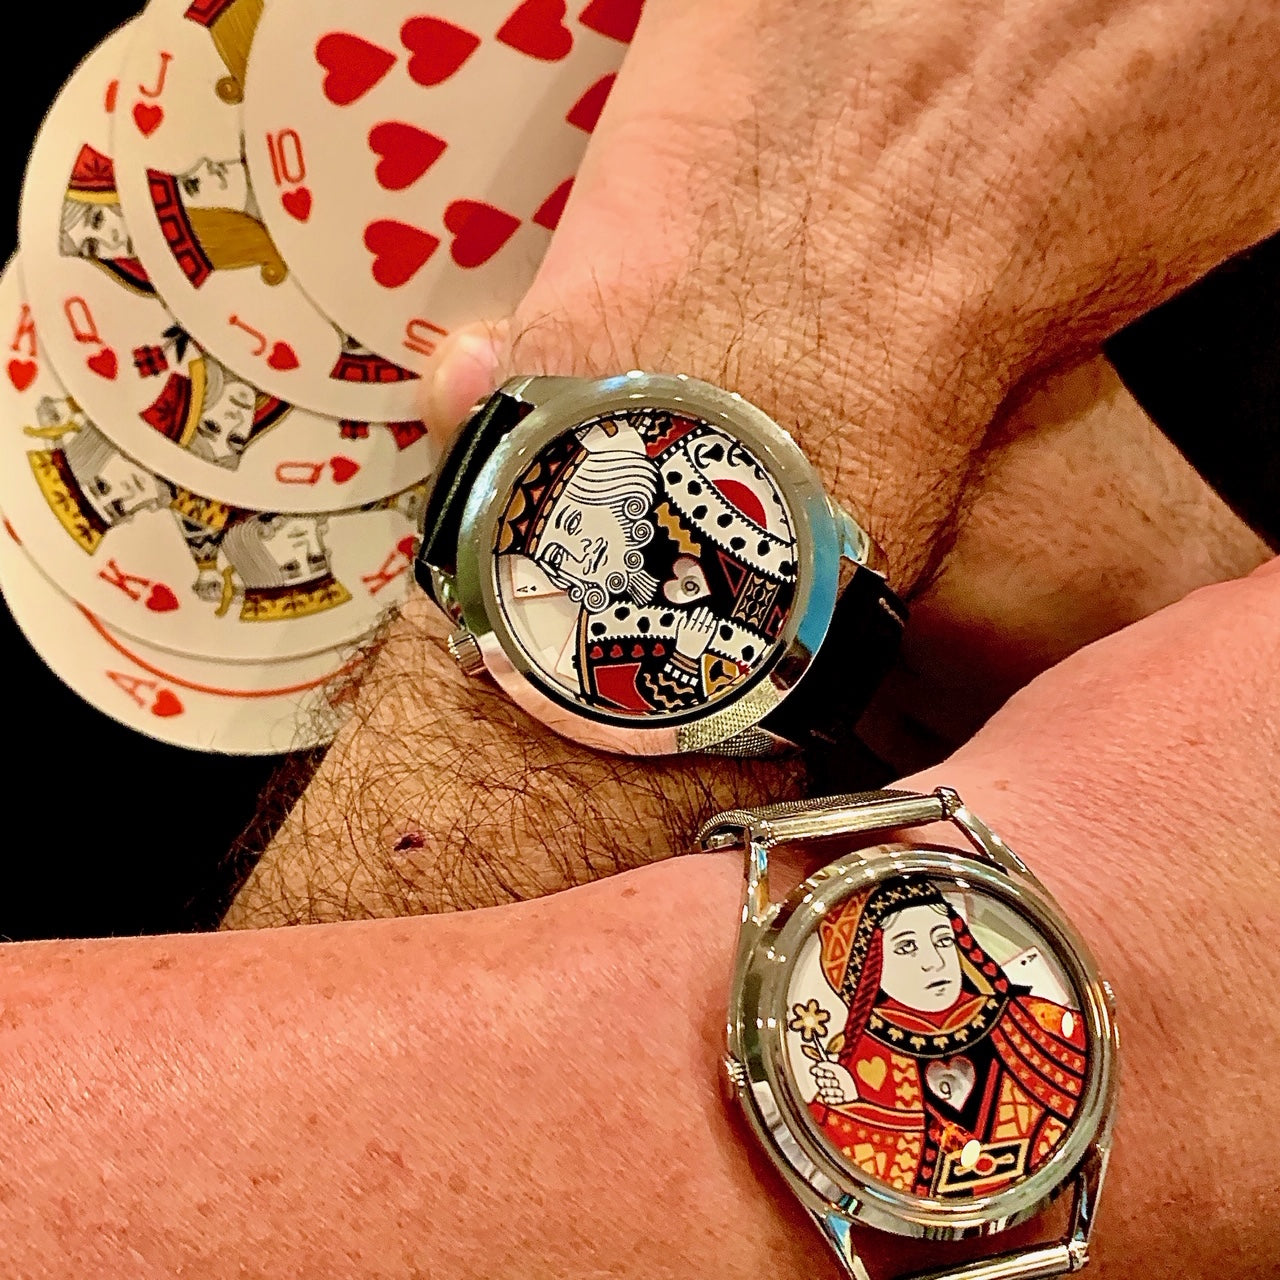 The King XL and Queen watches